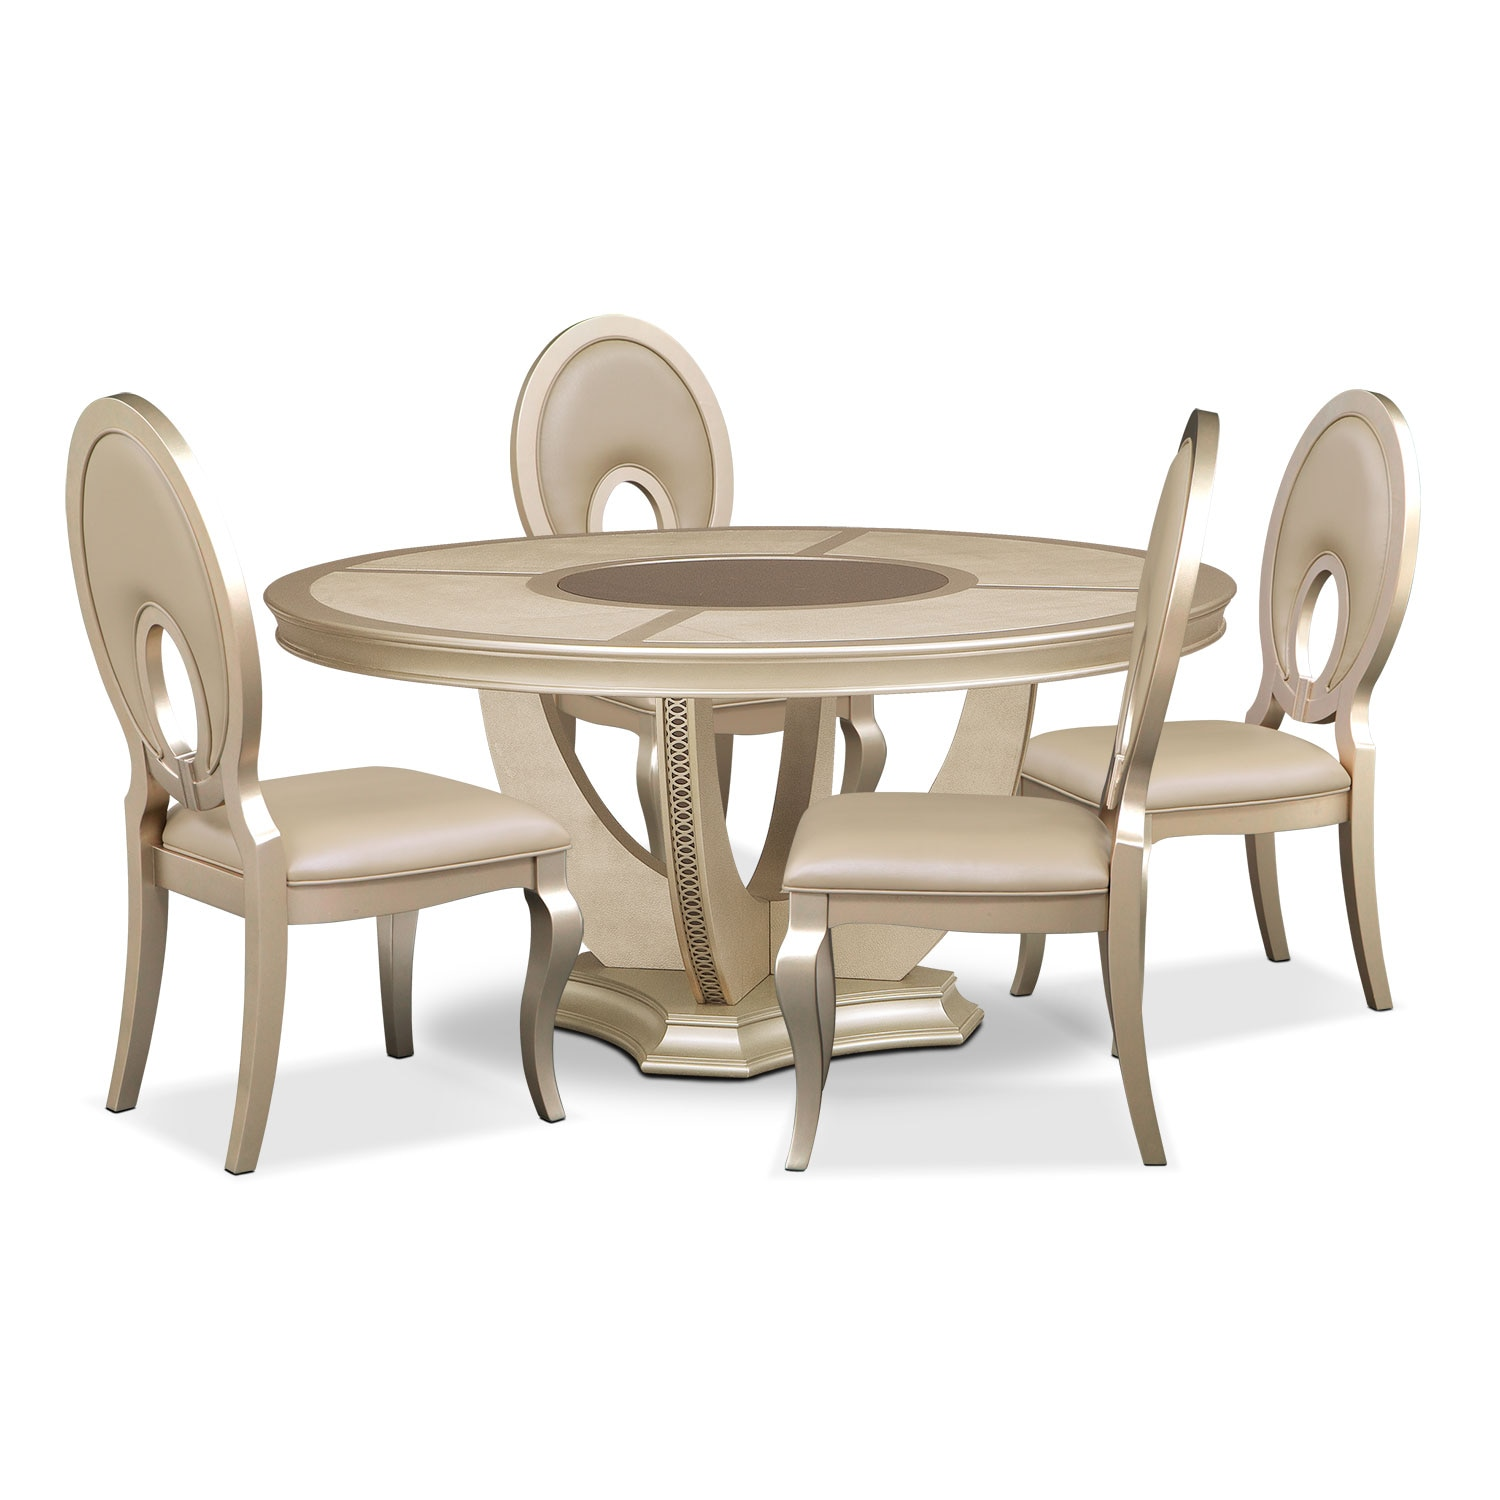 Dining room dinette tables american signature furniture for American furniture dinette sets